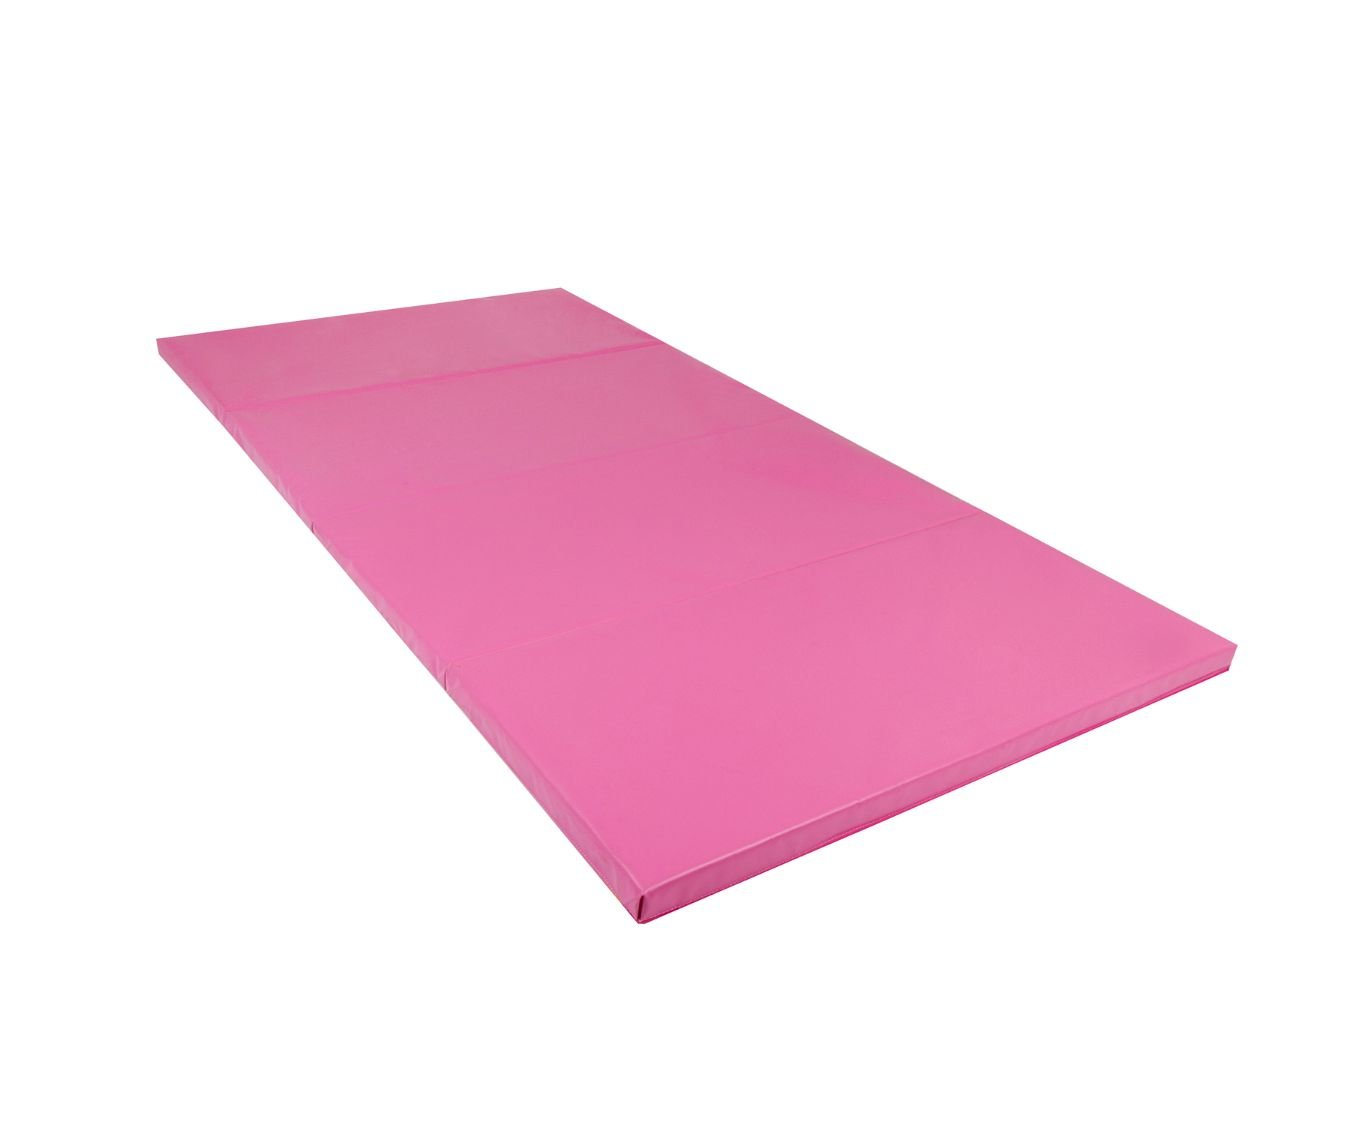 mats sale buy detail for air track inflatable gymnastics on product mat pink